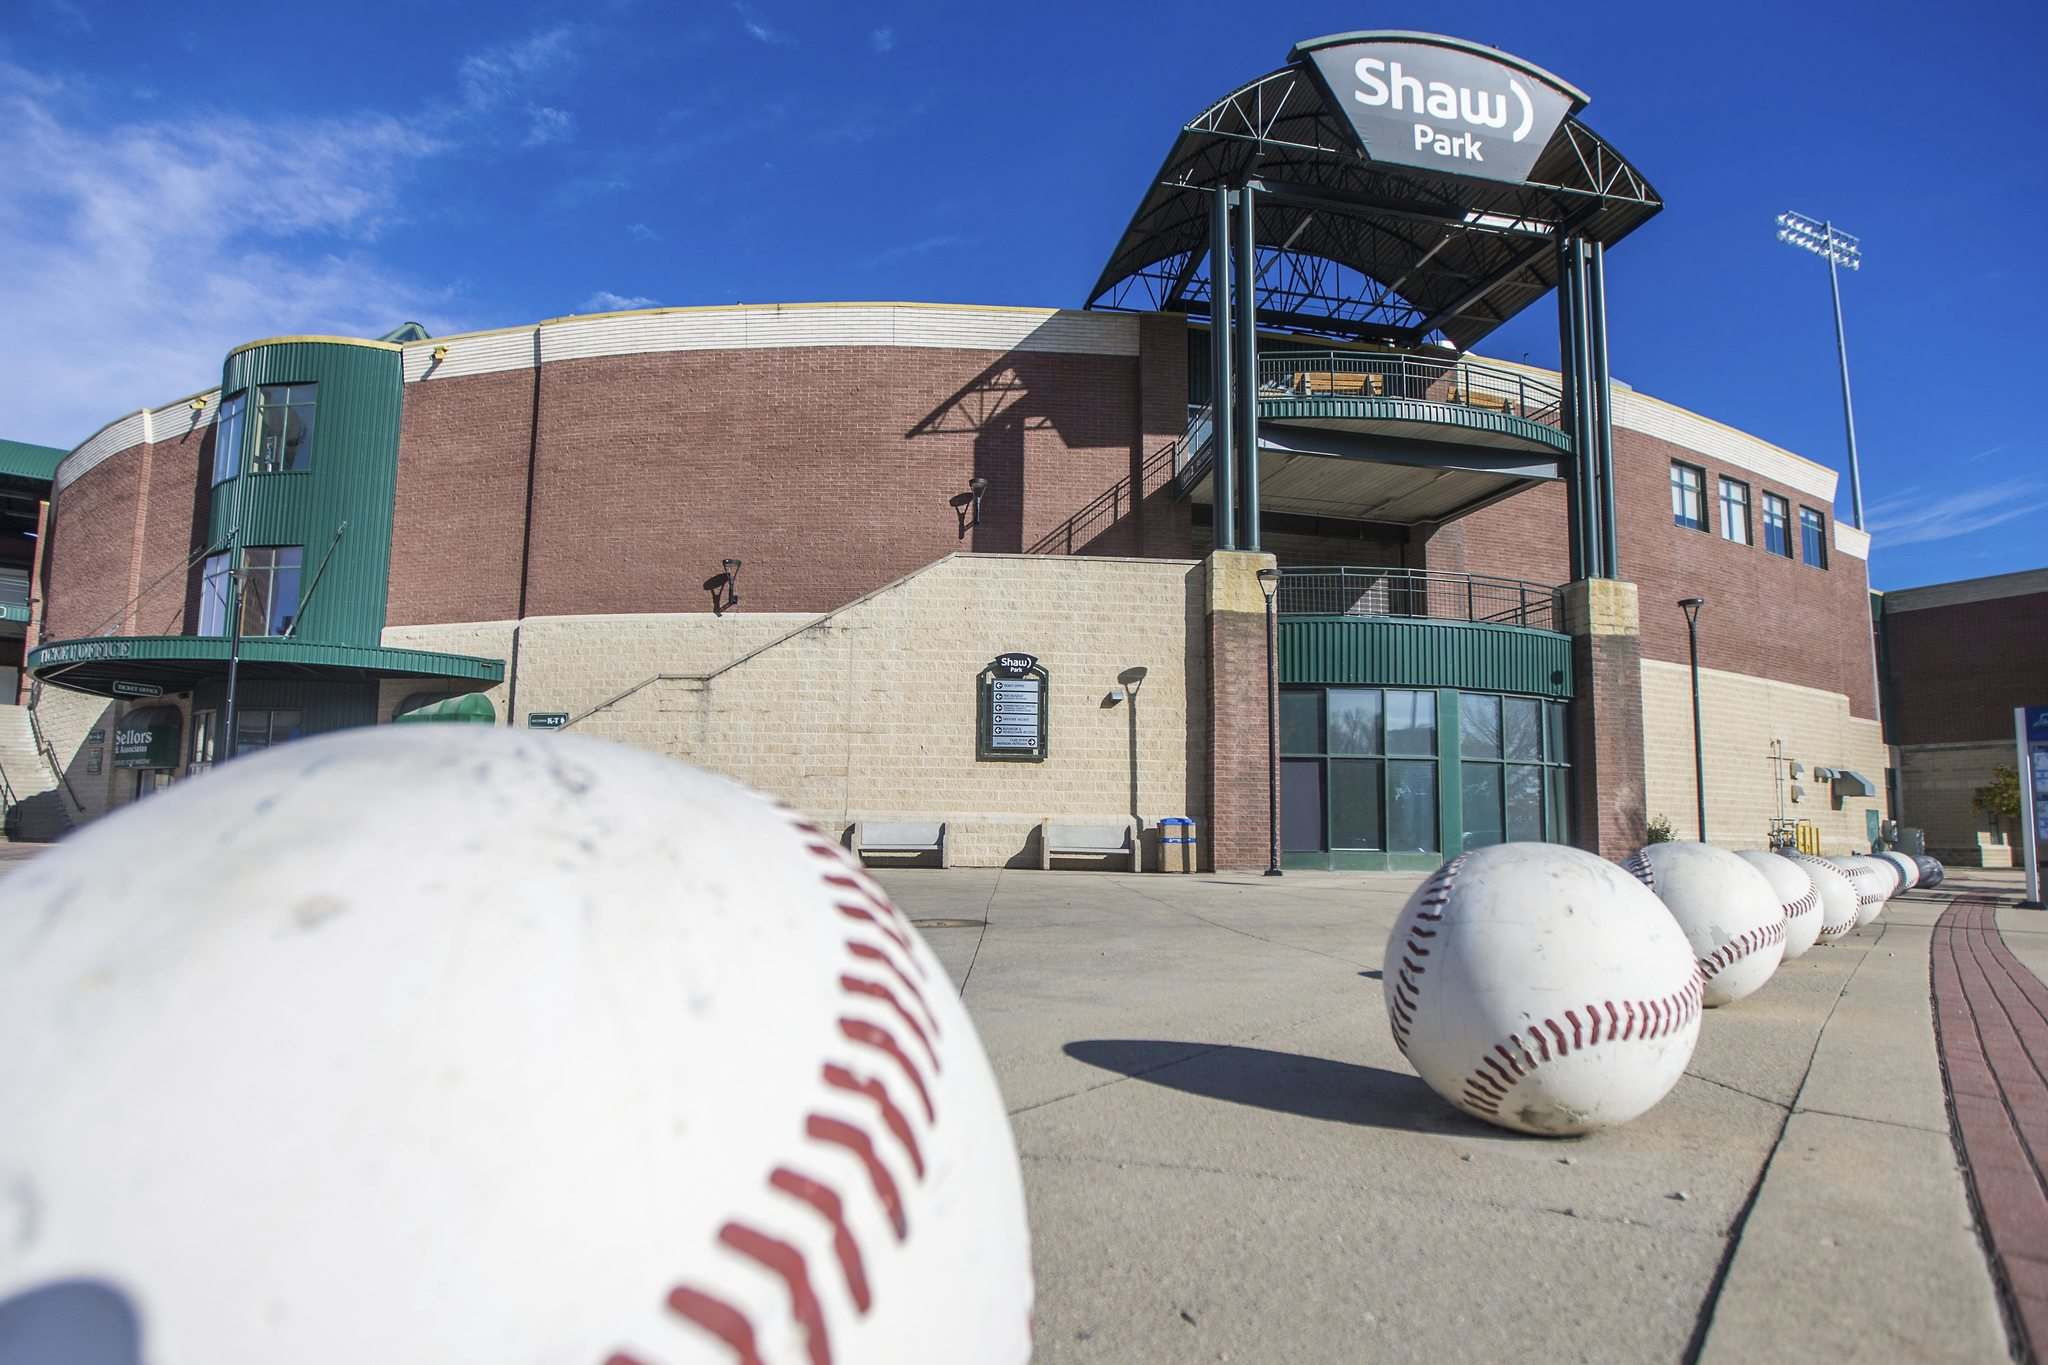 MIKAELA MACKENZIE / WINNIPEG FREE PRESS</p></p><p>Winnipeg City Council has postponed its vote on a proposed 15-year lease since July, directing City of Winnipeg staff to first seek more financial information from the Goldeyes and Riverside Park Management.</p>